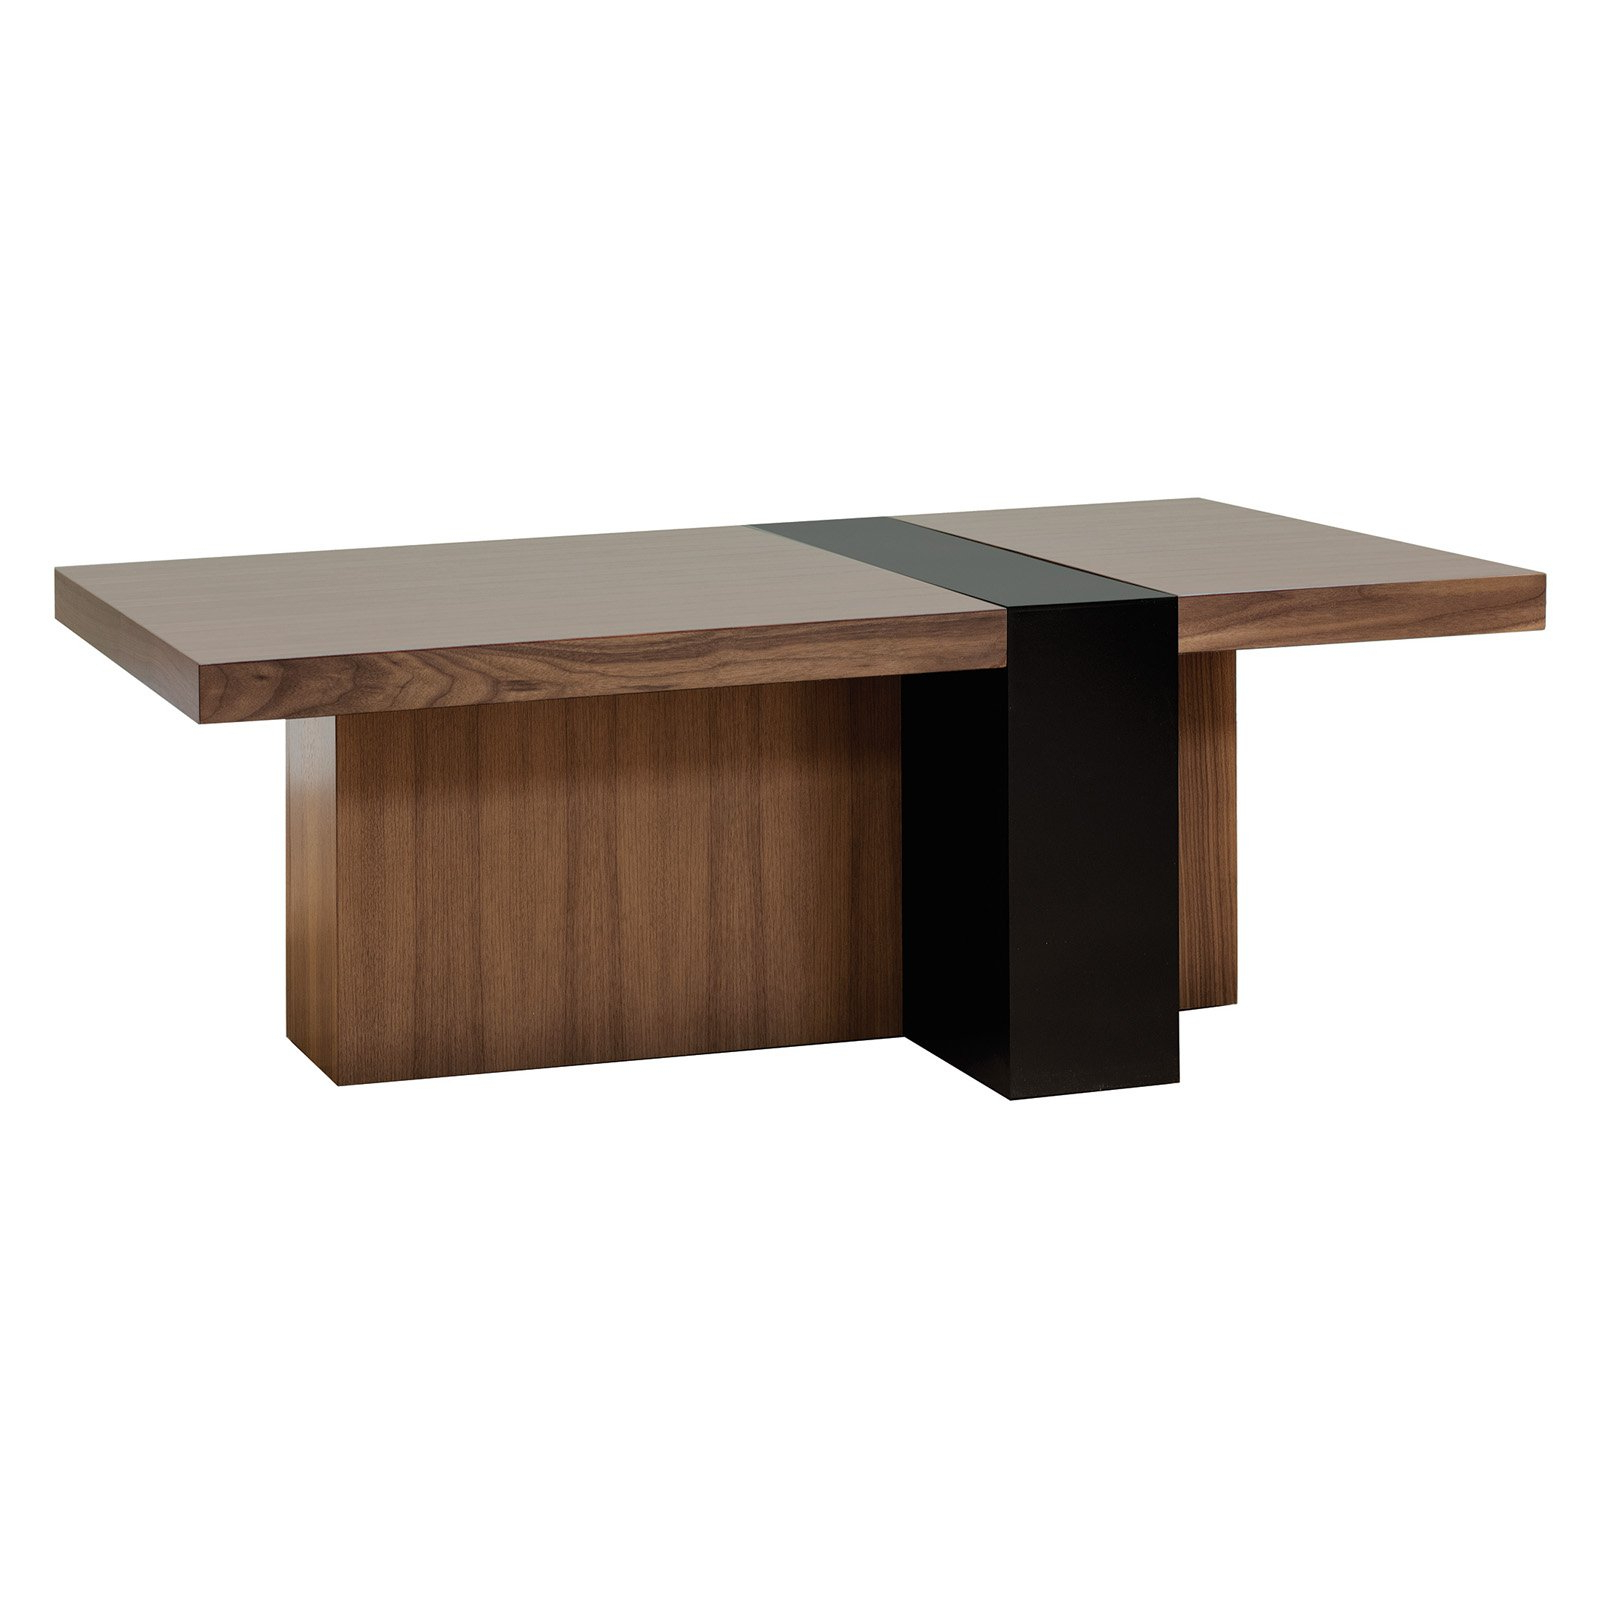 Famous Martin Furniture Stratus Coffee Table – Walmart For Stratus Cocktail Tables (Gallery 7 of 20)